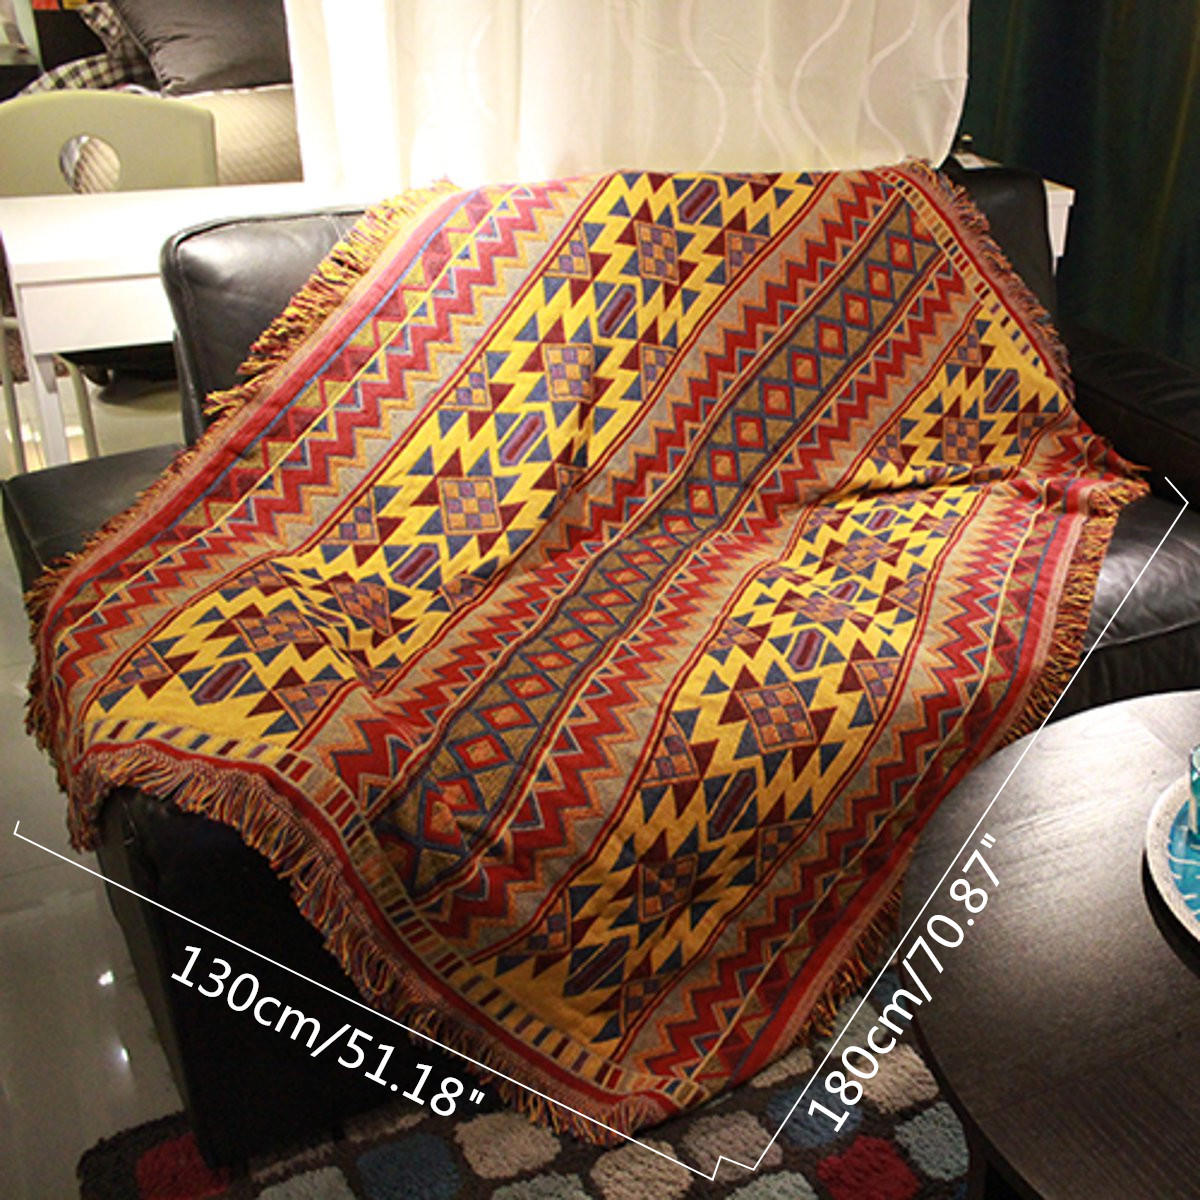 Cotton Knitted Blankets Throw Tribal Bohemian Ethnic Sofa Bedding Home Decor - 9